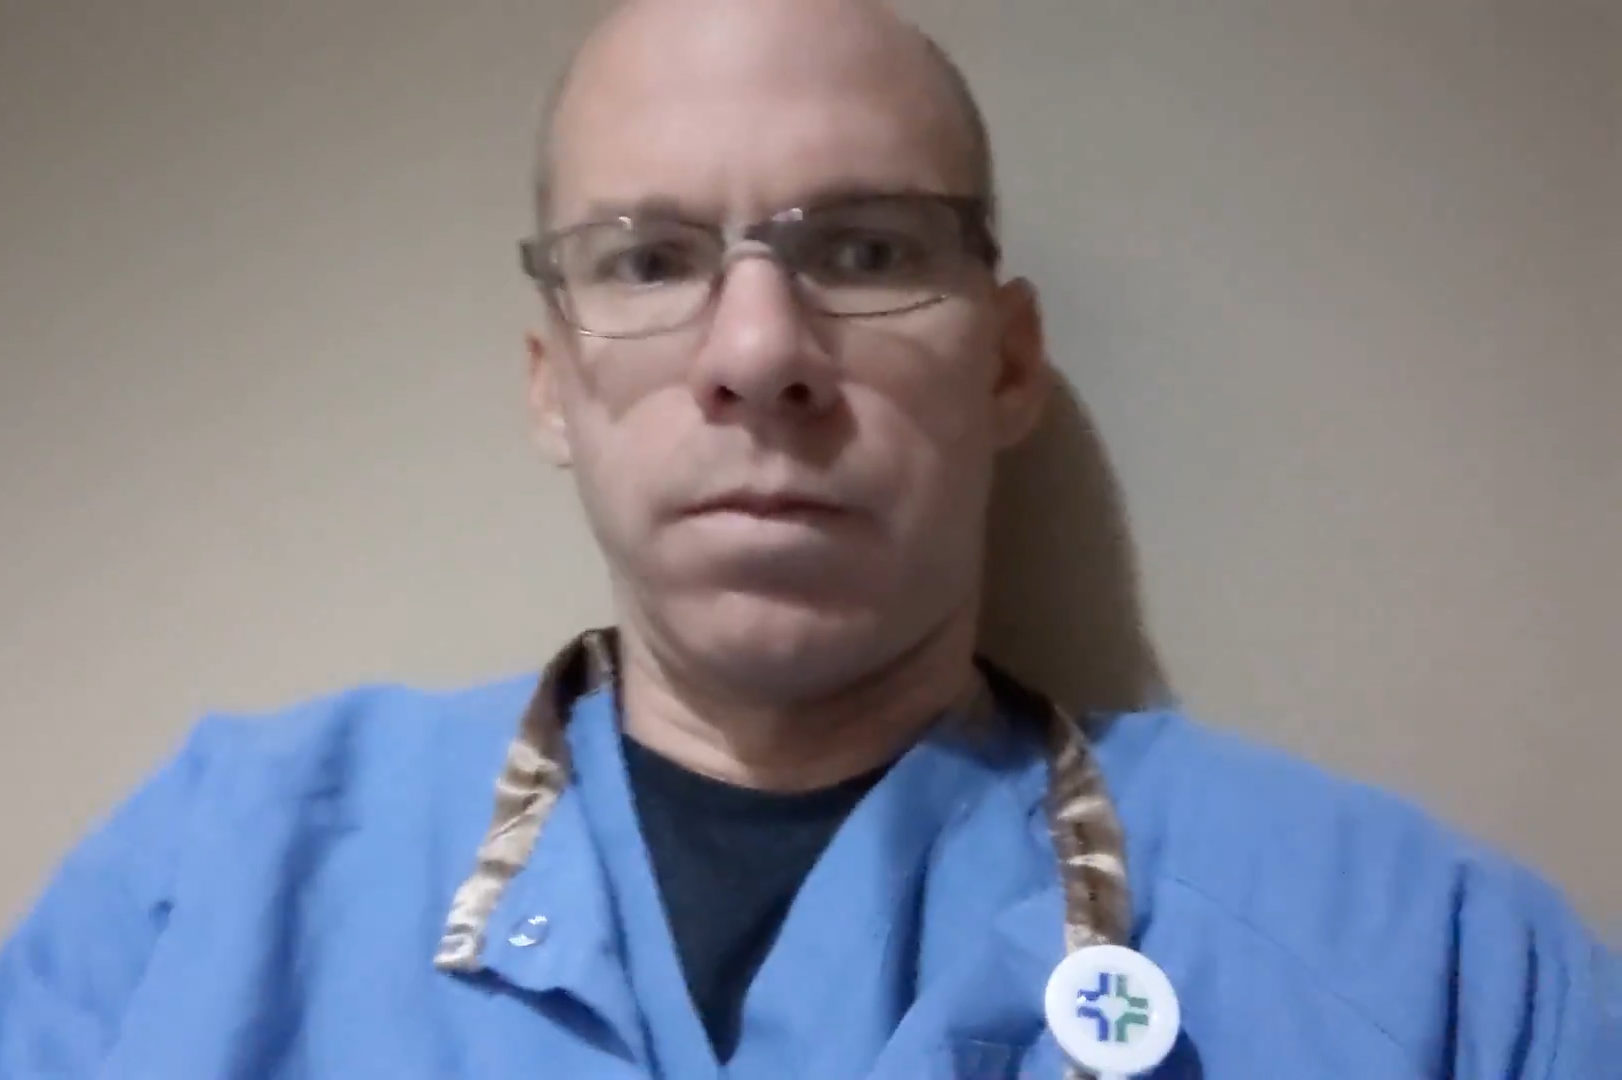 Dr. Peter Stubenrauch, Critical Care Pulmonologist, National Jewish